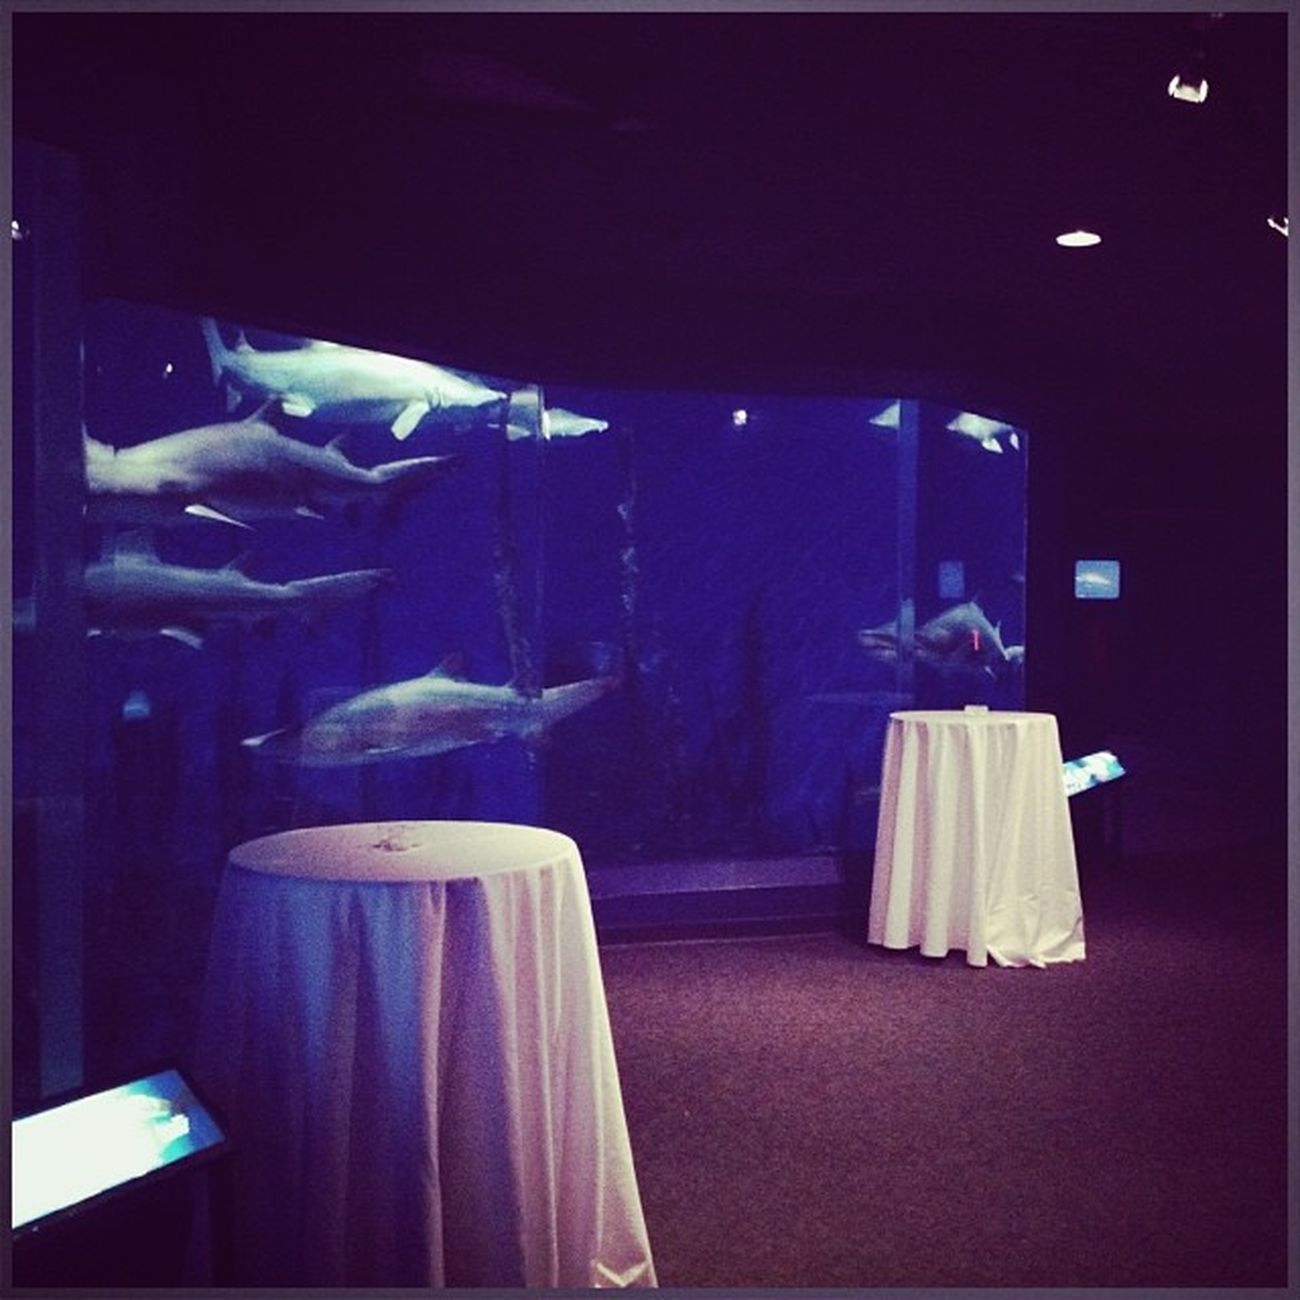 Cocktail hour while watching sharks? Sure! Theflorallife Florist Weddings Sharktank